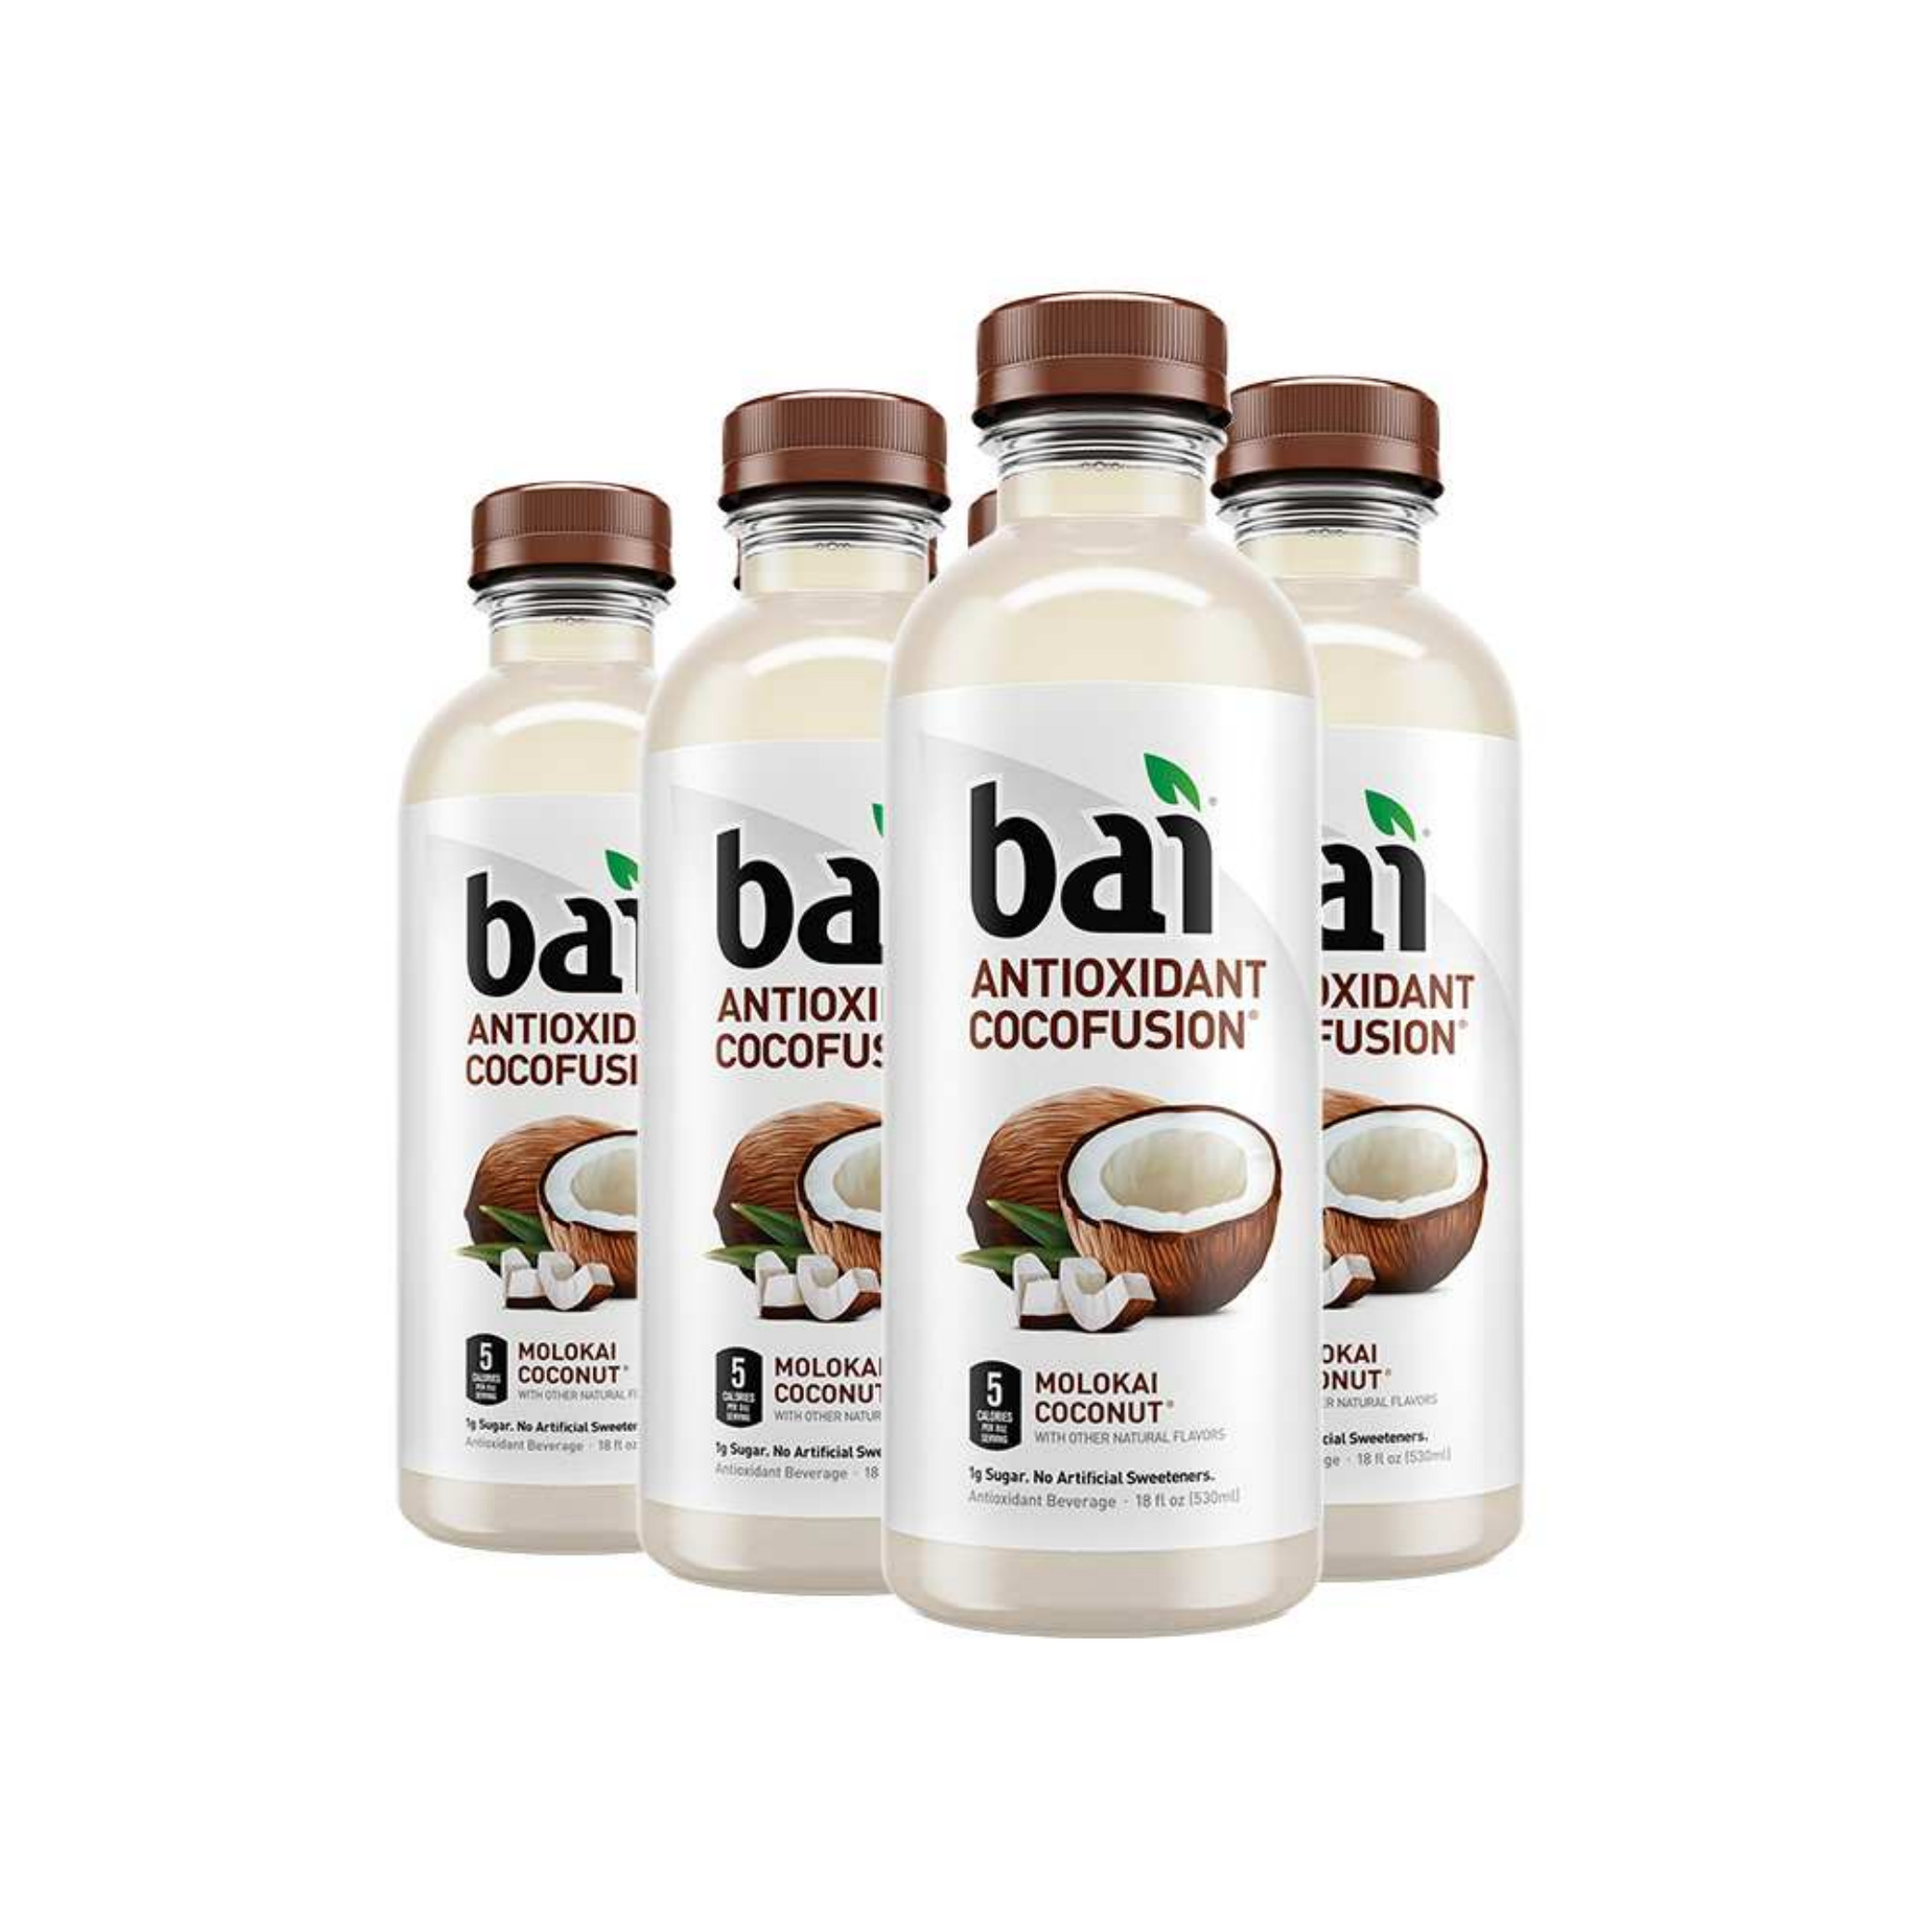 Bai Cocofusions Molokai Coconut, Antioxidant Infused Beverage, 18 fl oz, 6 pack